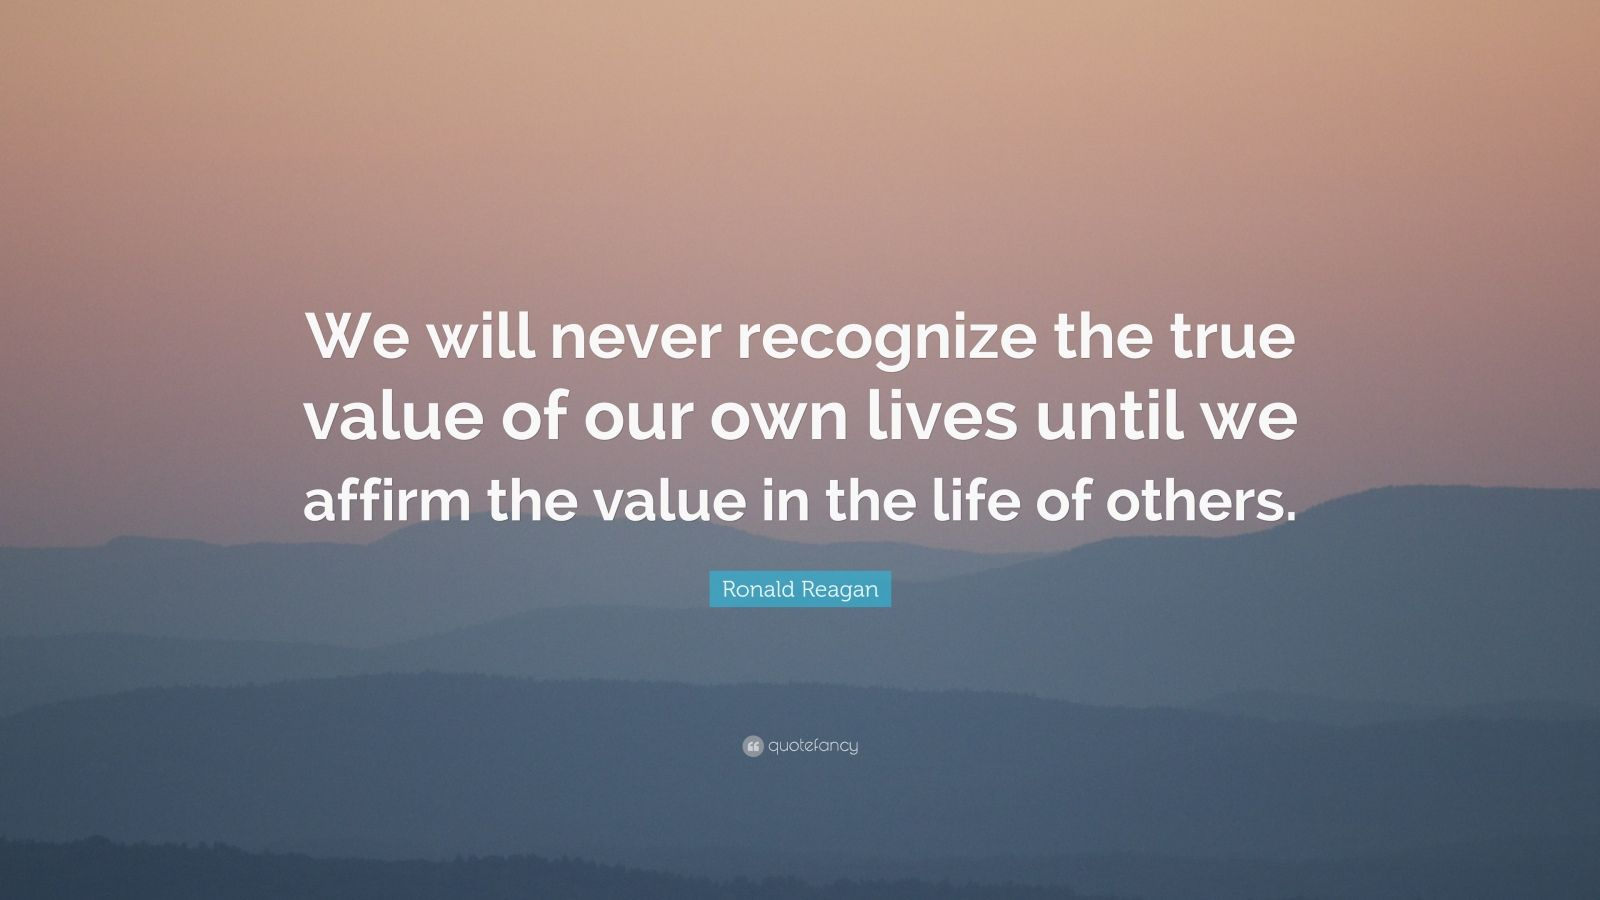 5 values of my life